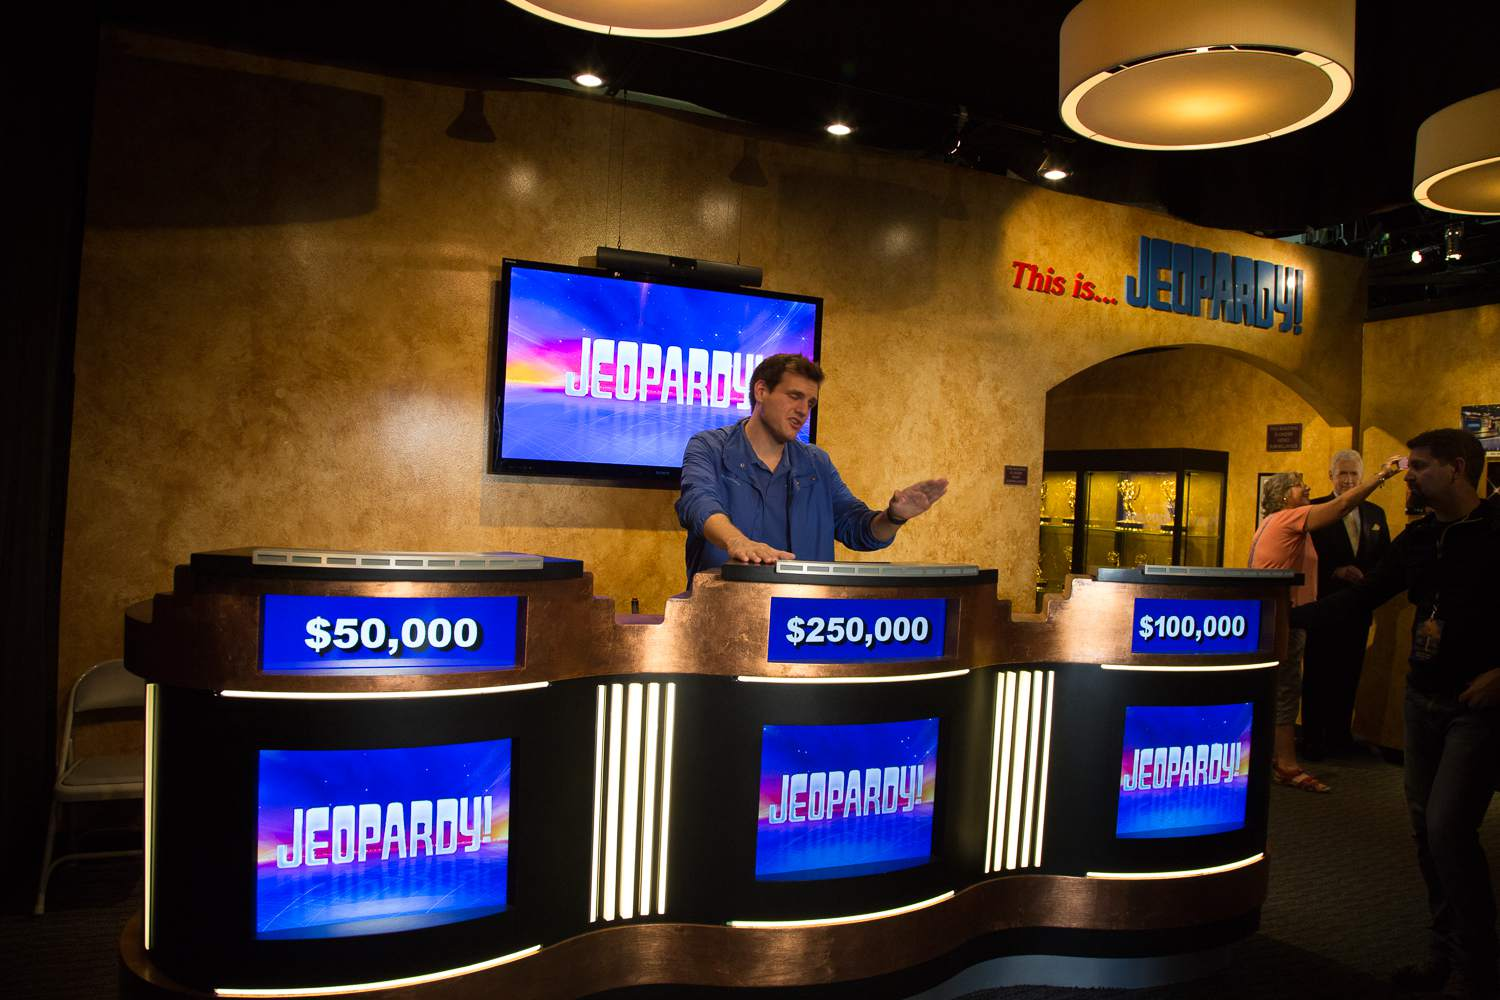 The Jeopardy set at Sony Pictures Studios in Culver City